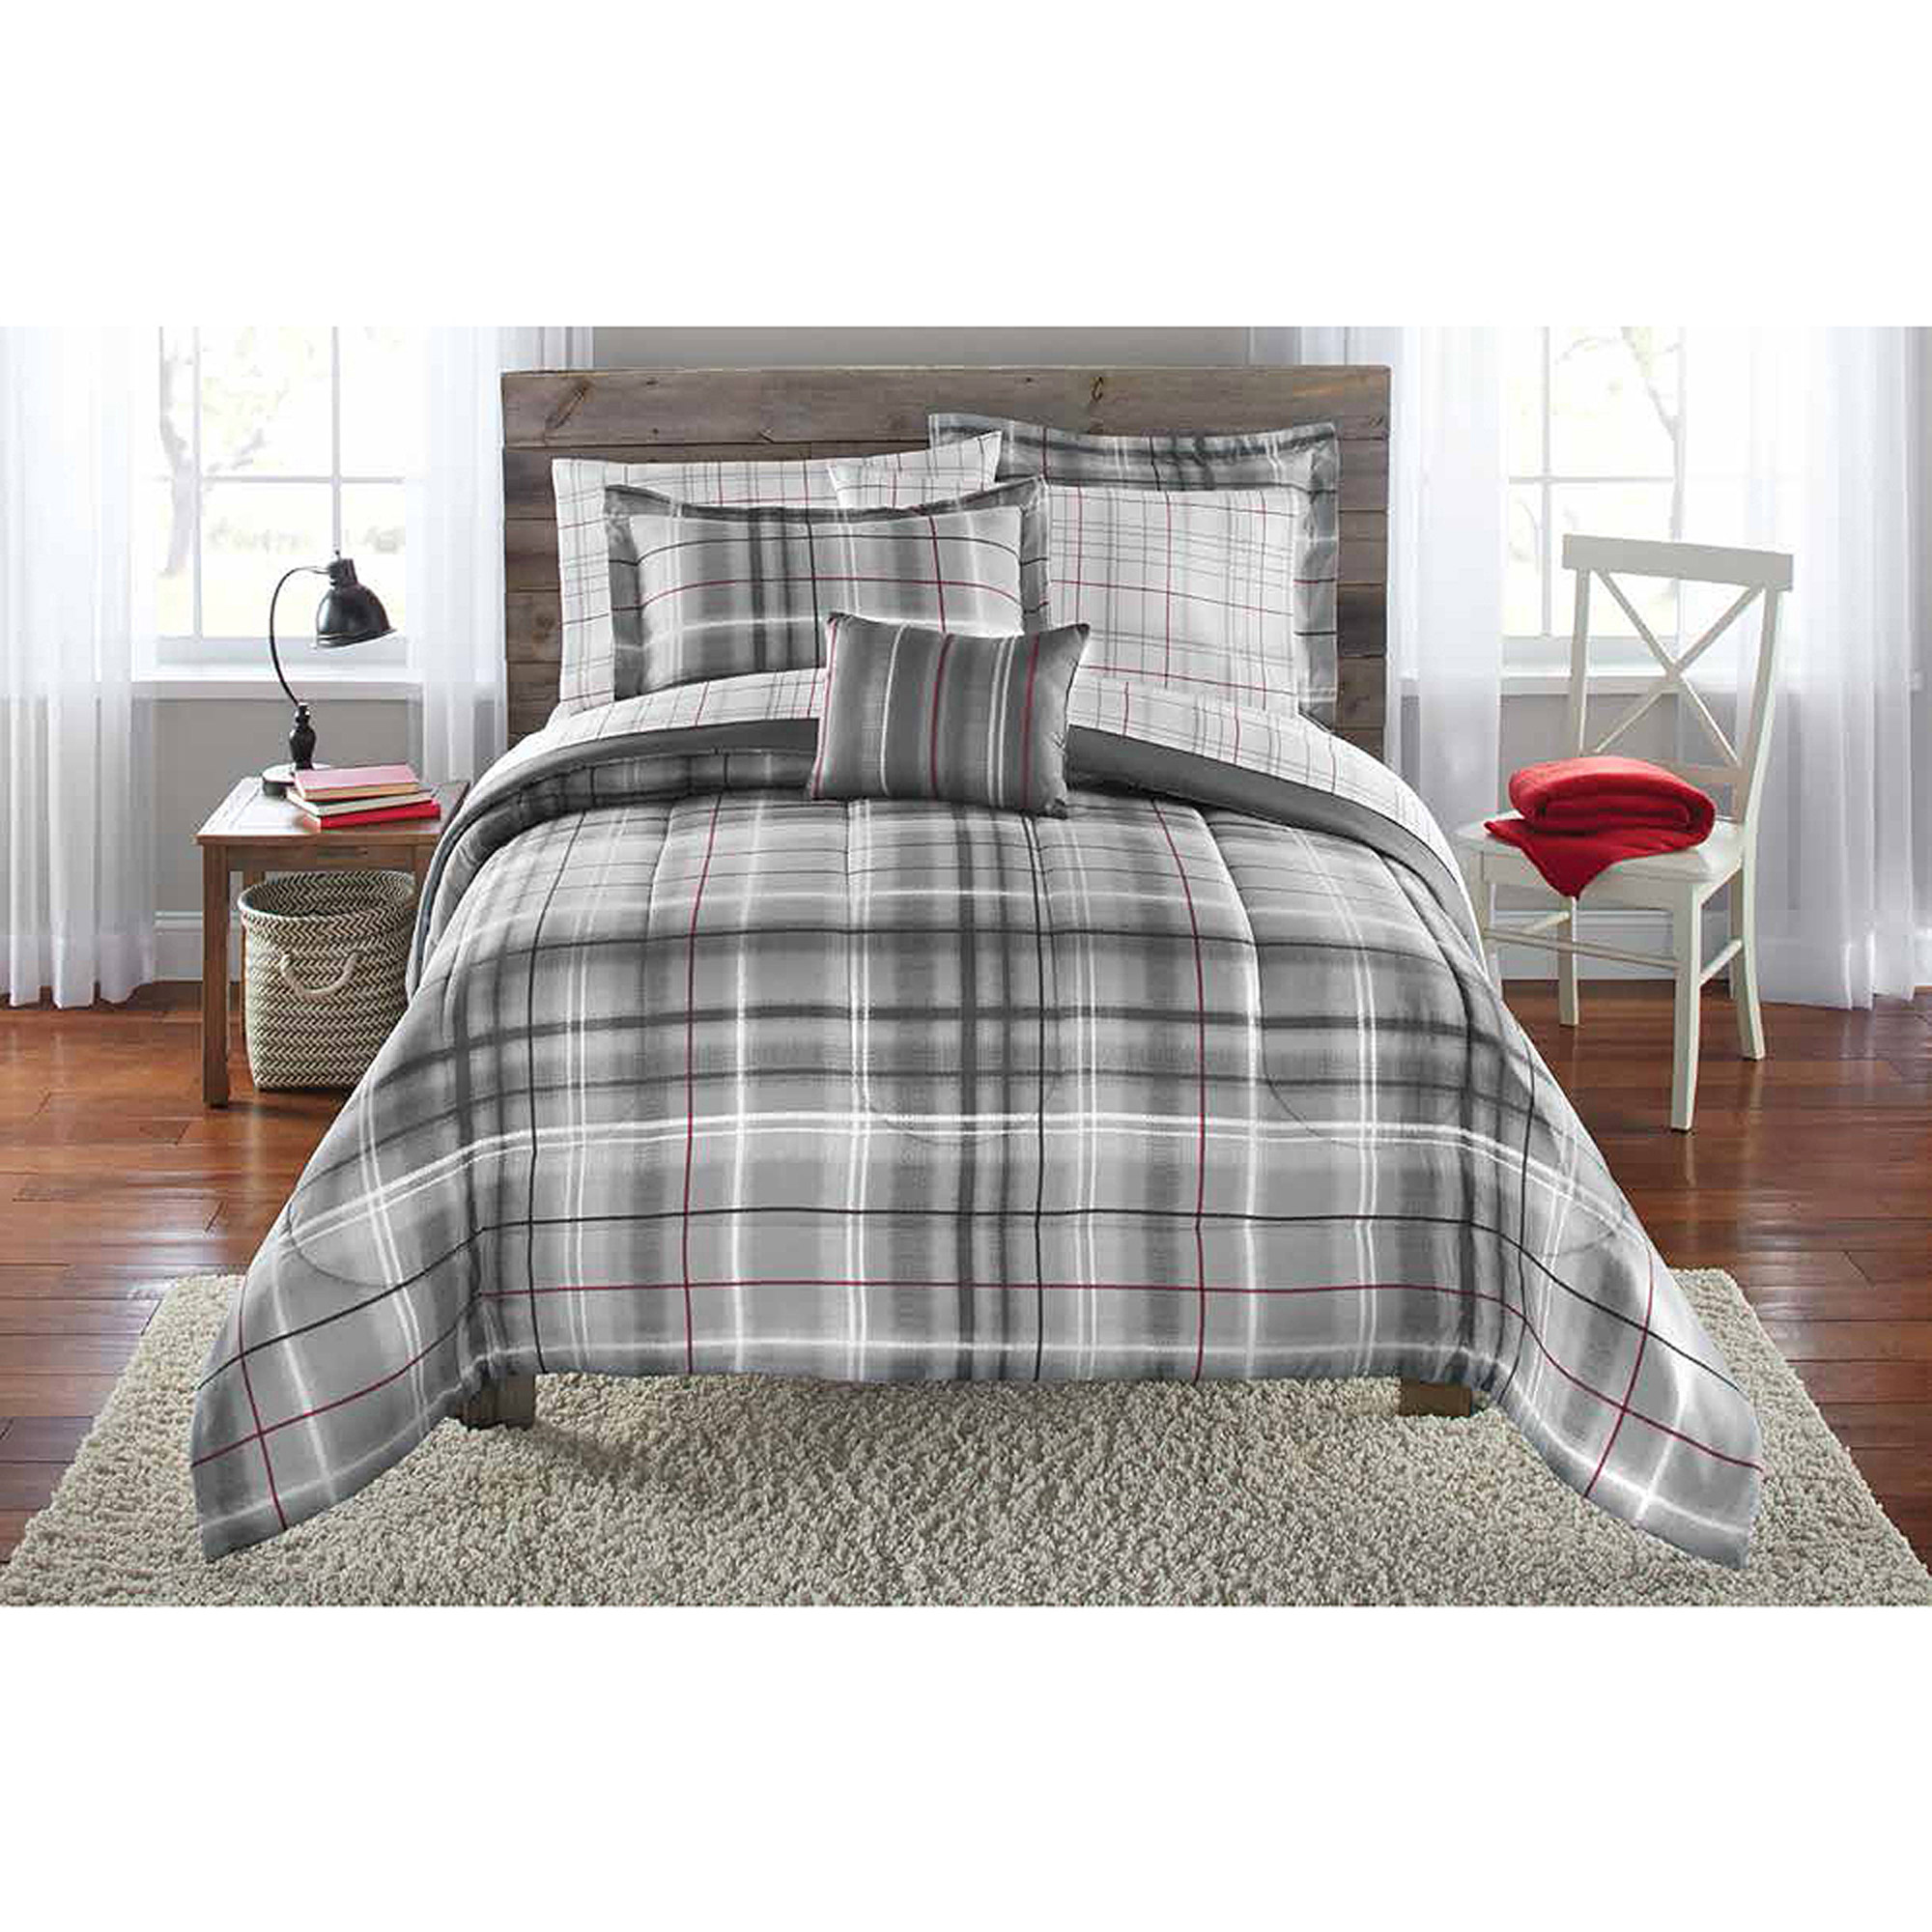 taupe largea set beddingf and comforter setsf gray setsa for buffalo queen check bed perfect bedding sets plaid crib